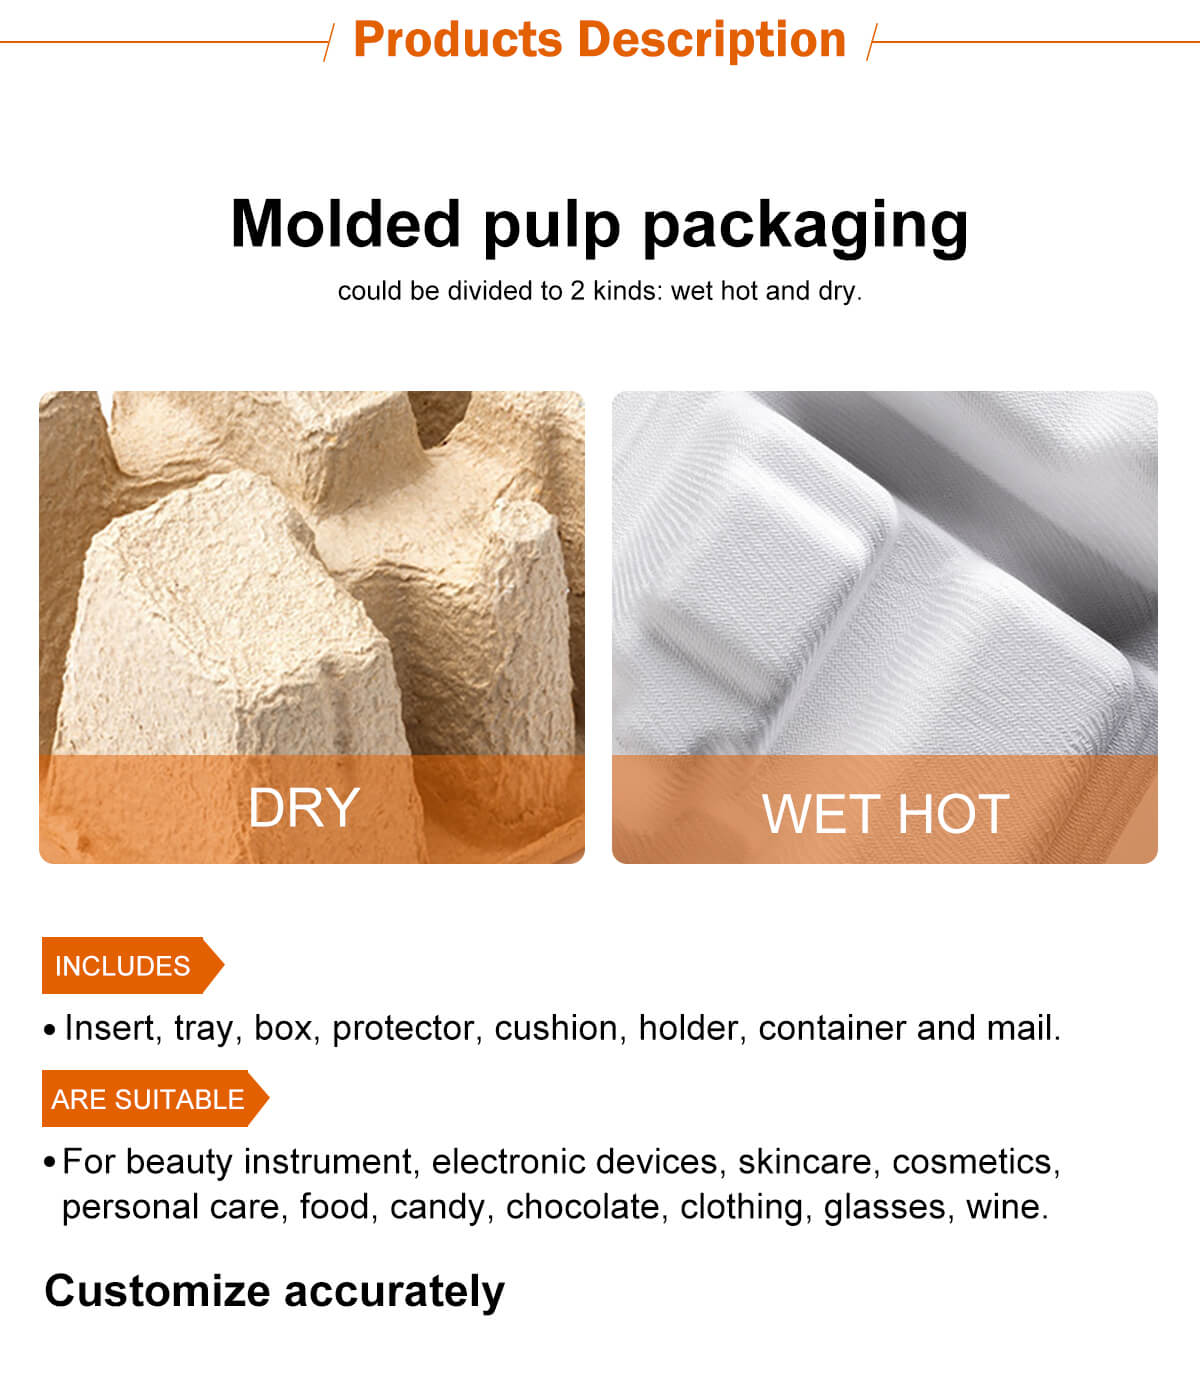 Molded pulp packaging could be divided to 2 kinds:wet hot and dry